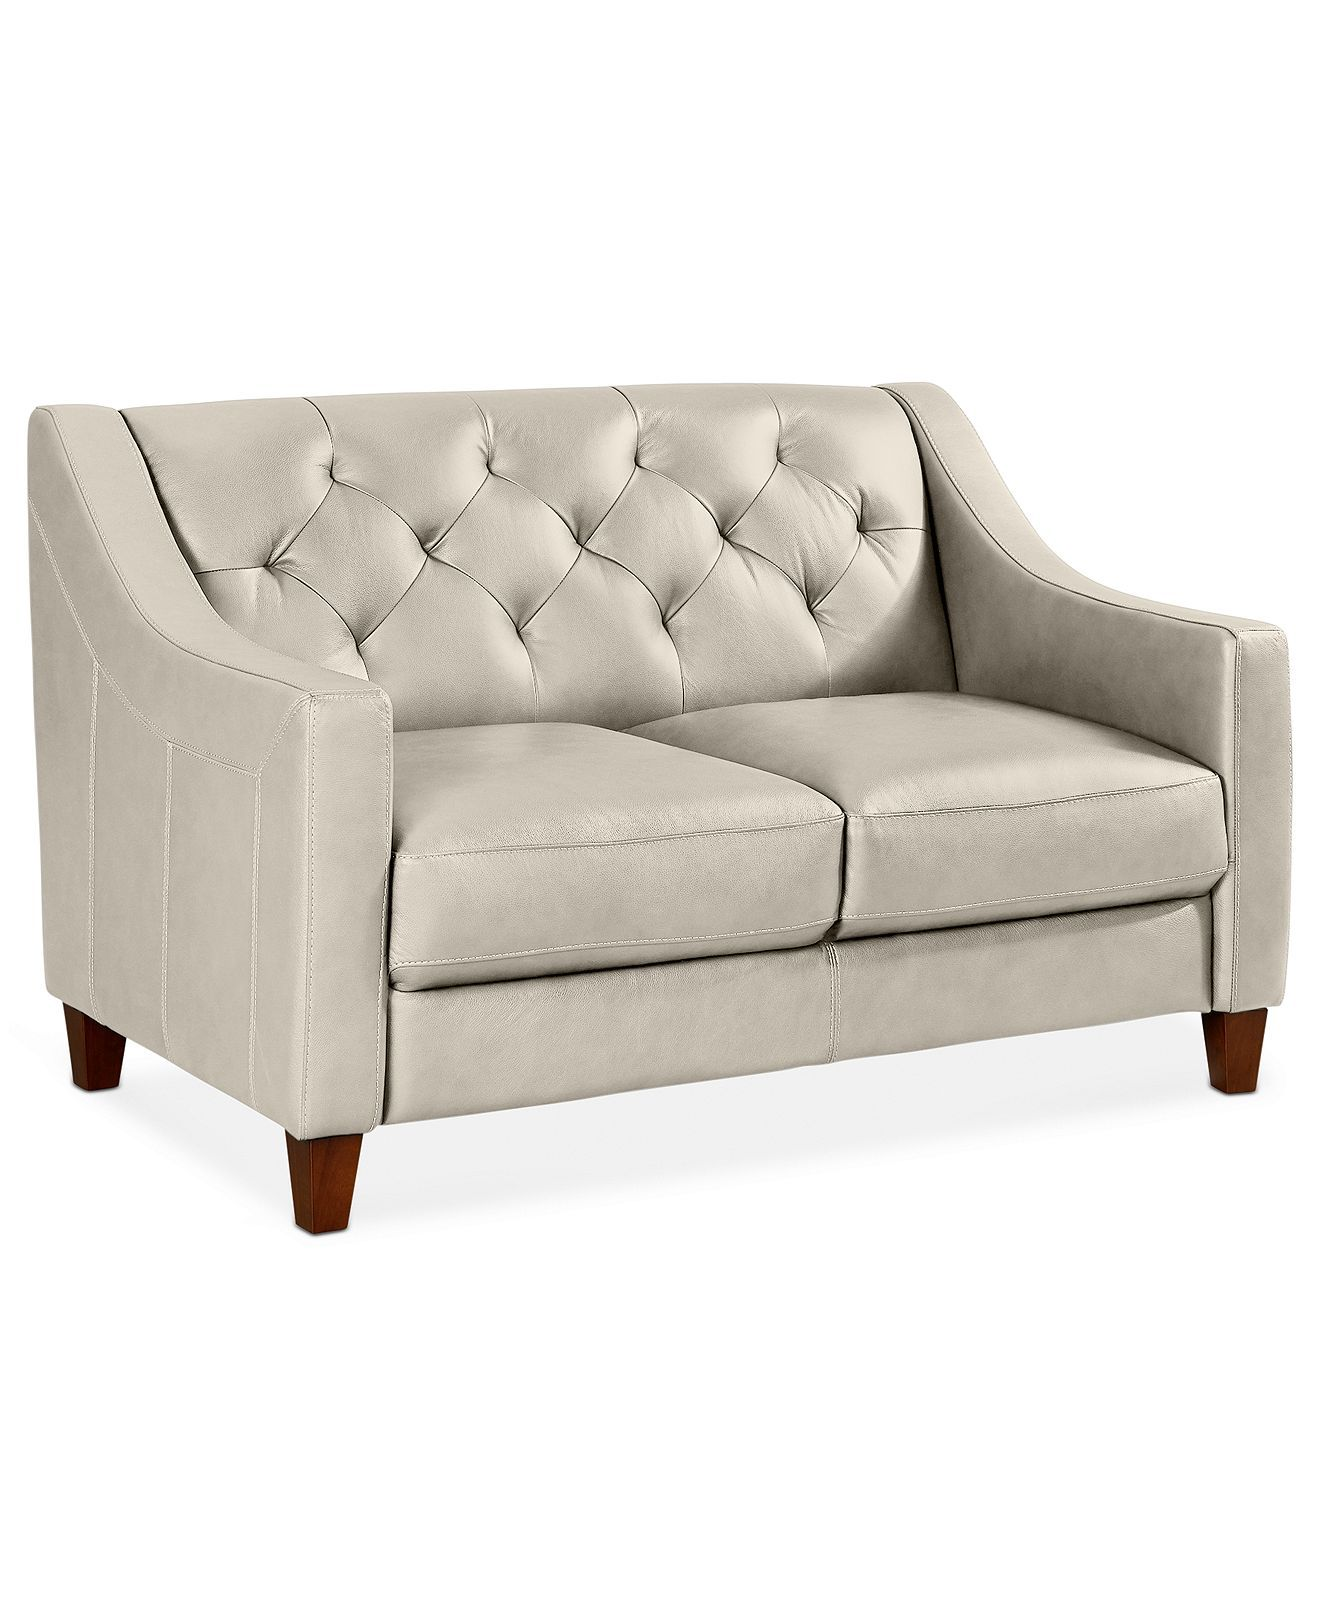 macy s furniture sofa tables antique brown chesterfield claudia ii leather loveseat 53 quotw x 35 quotd 33 quoth couches